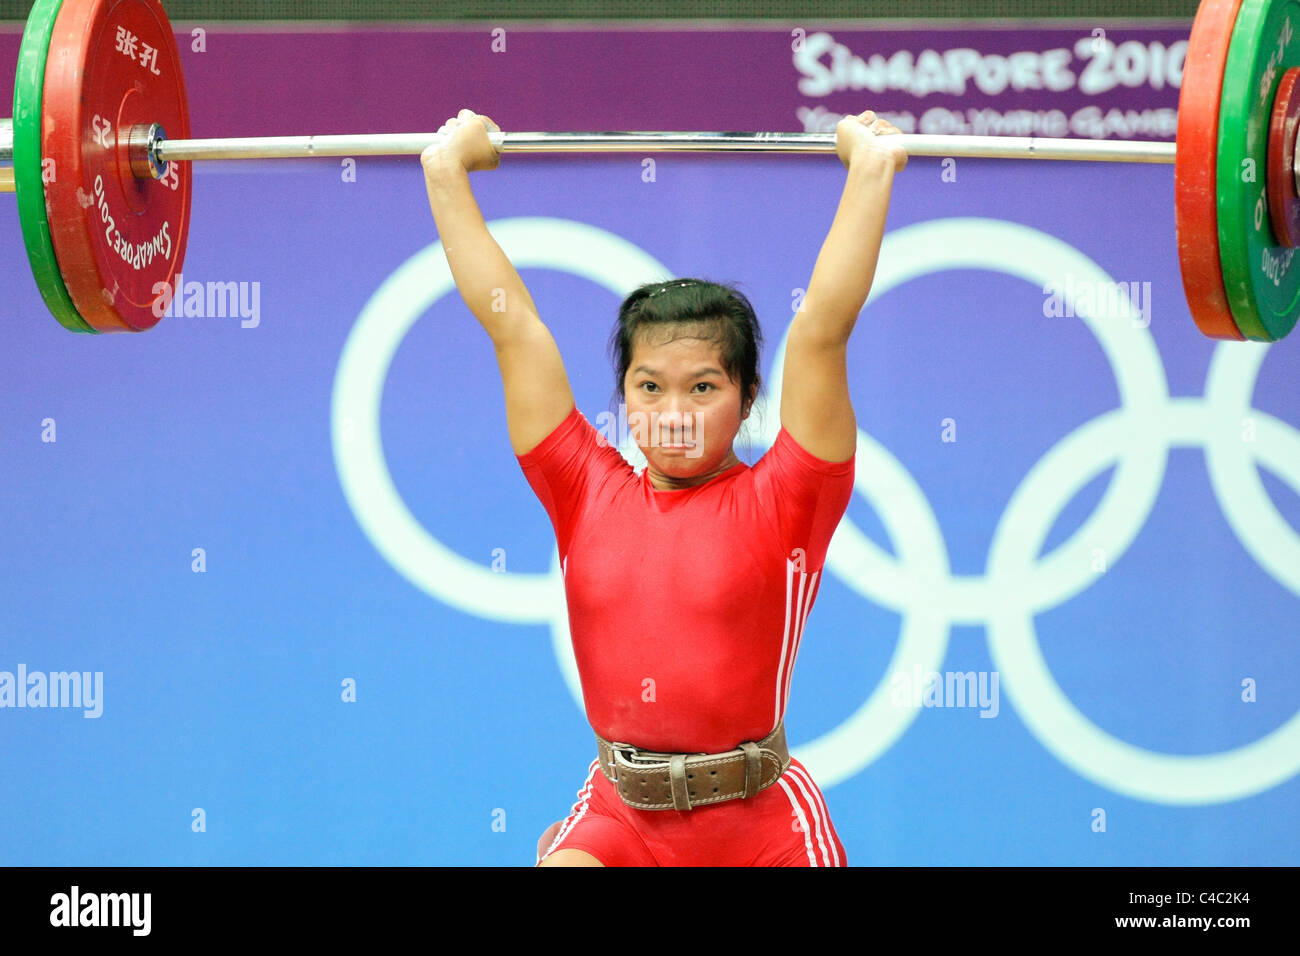 Dewi Safitri of Indonesia in action during her clean and jerk routine. - Stock Image